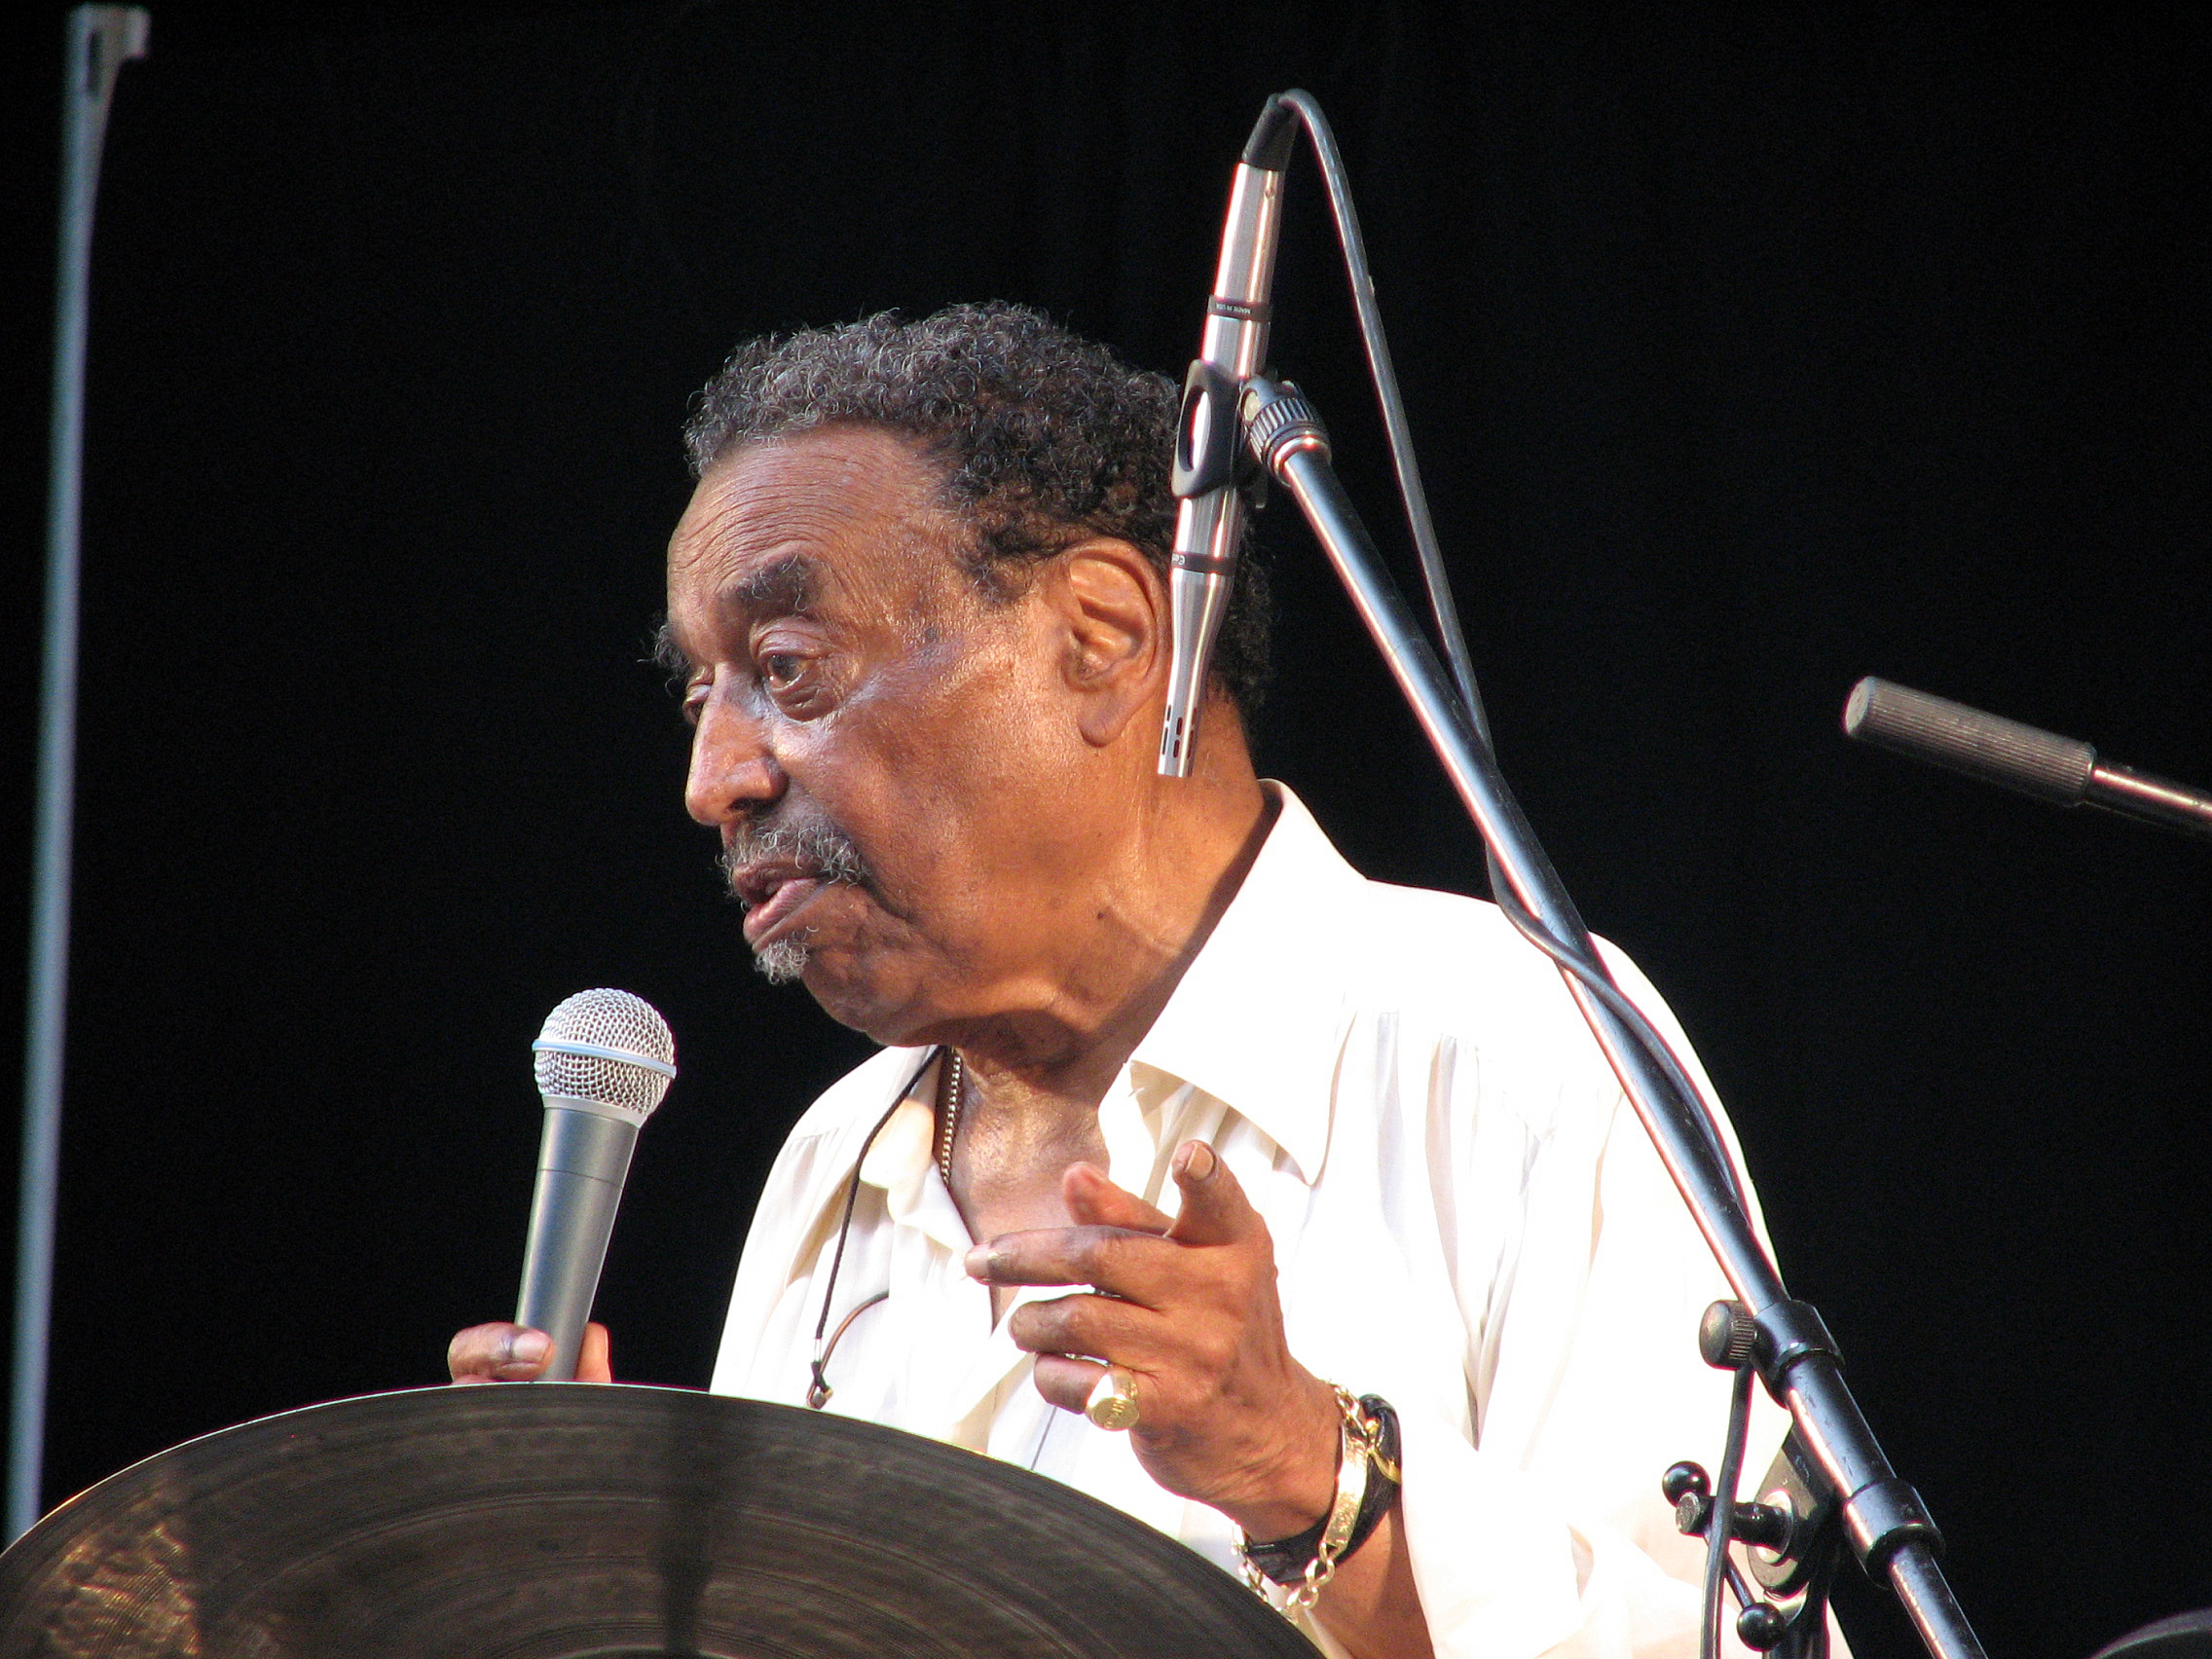 Chico Hamilton appearing at the Charlie Parker Jazz Festival in Tompkins Square Park, New York City, August 26, 2007